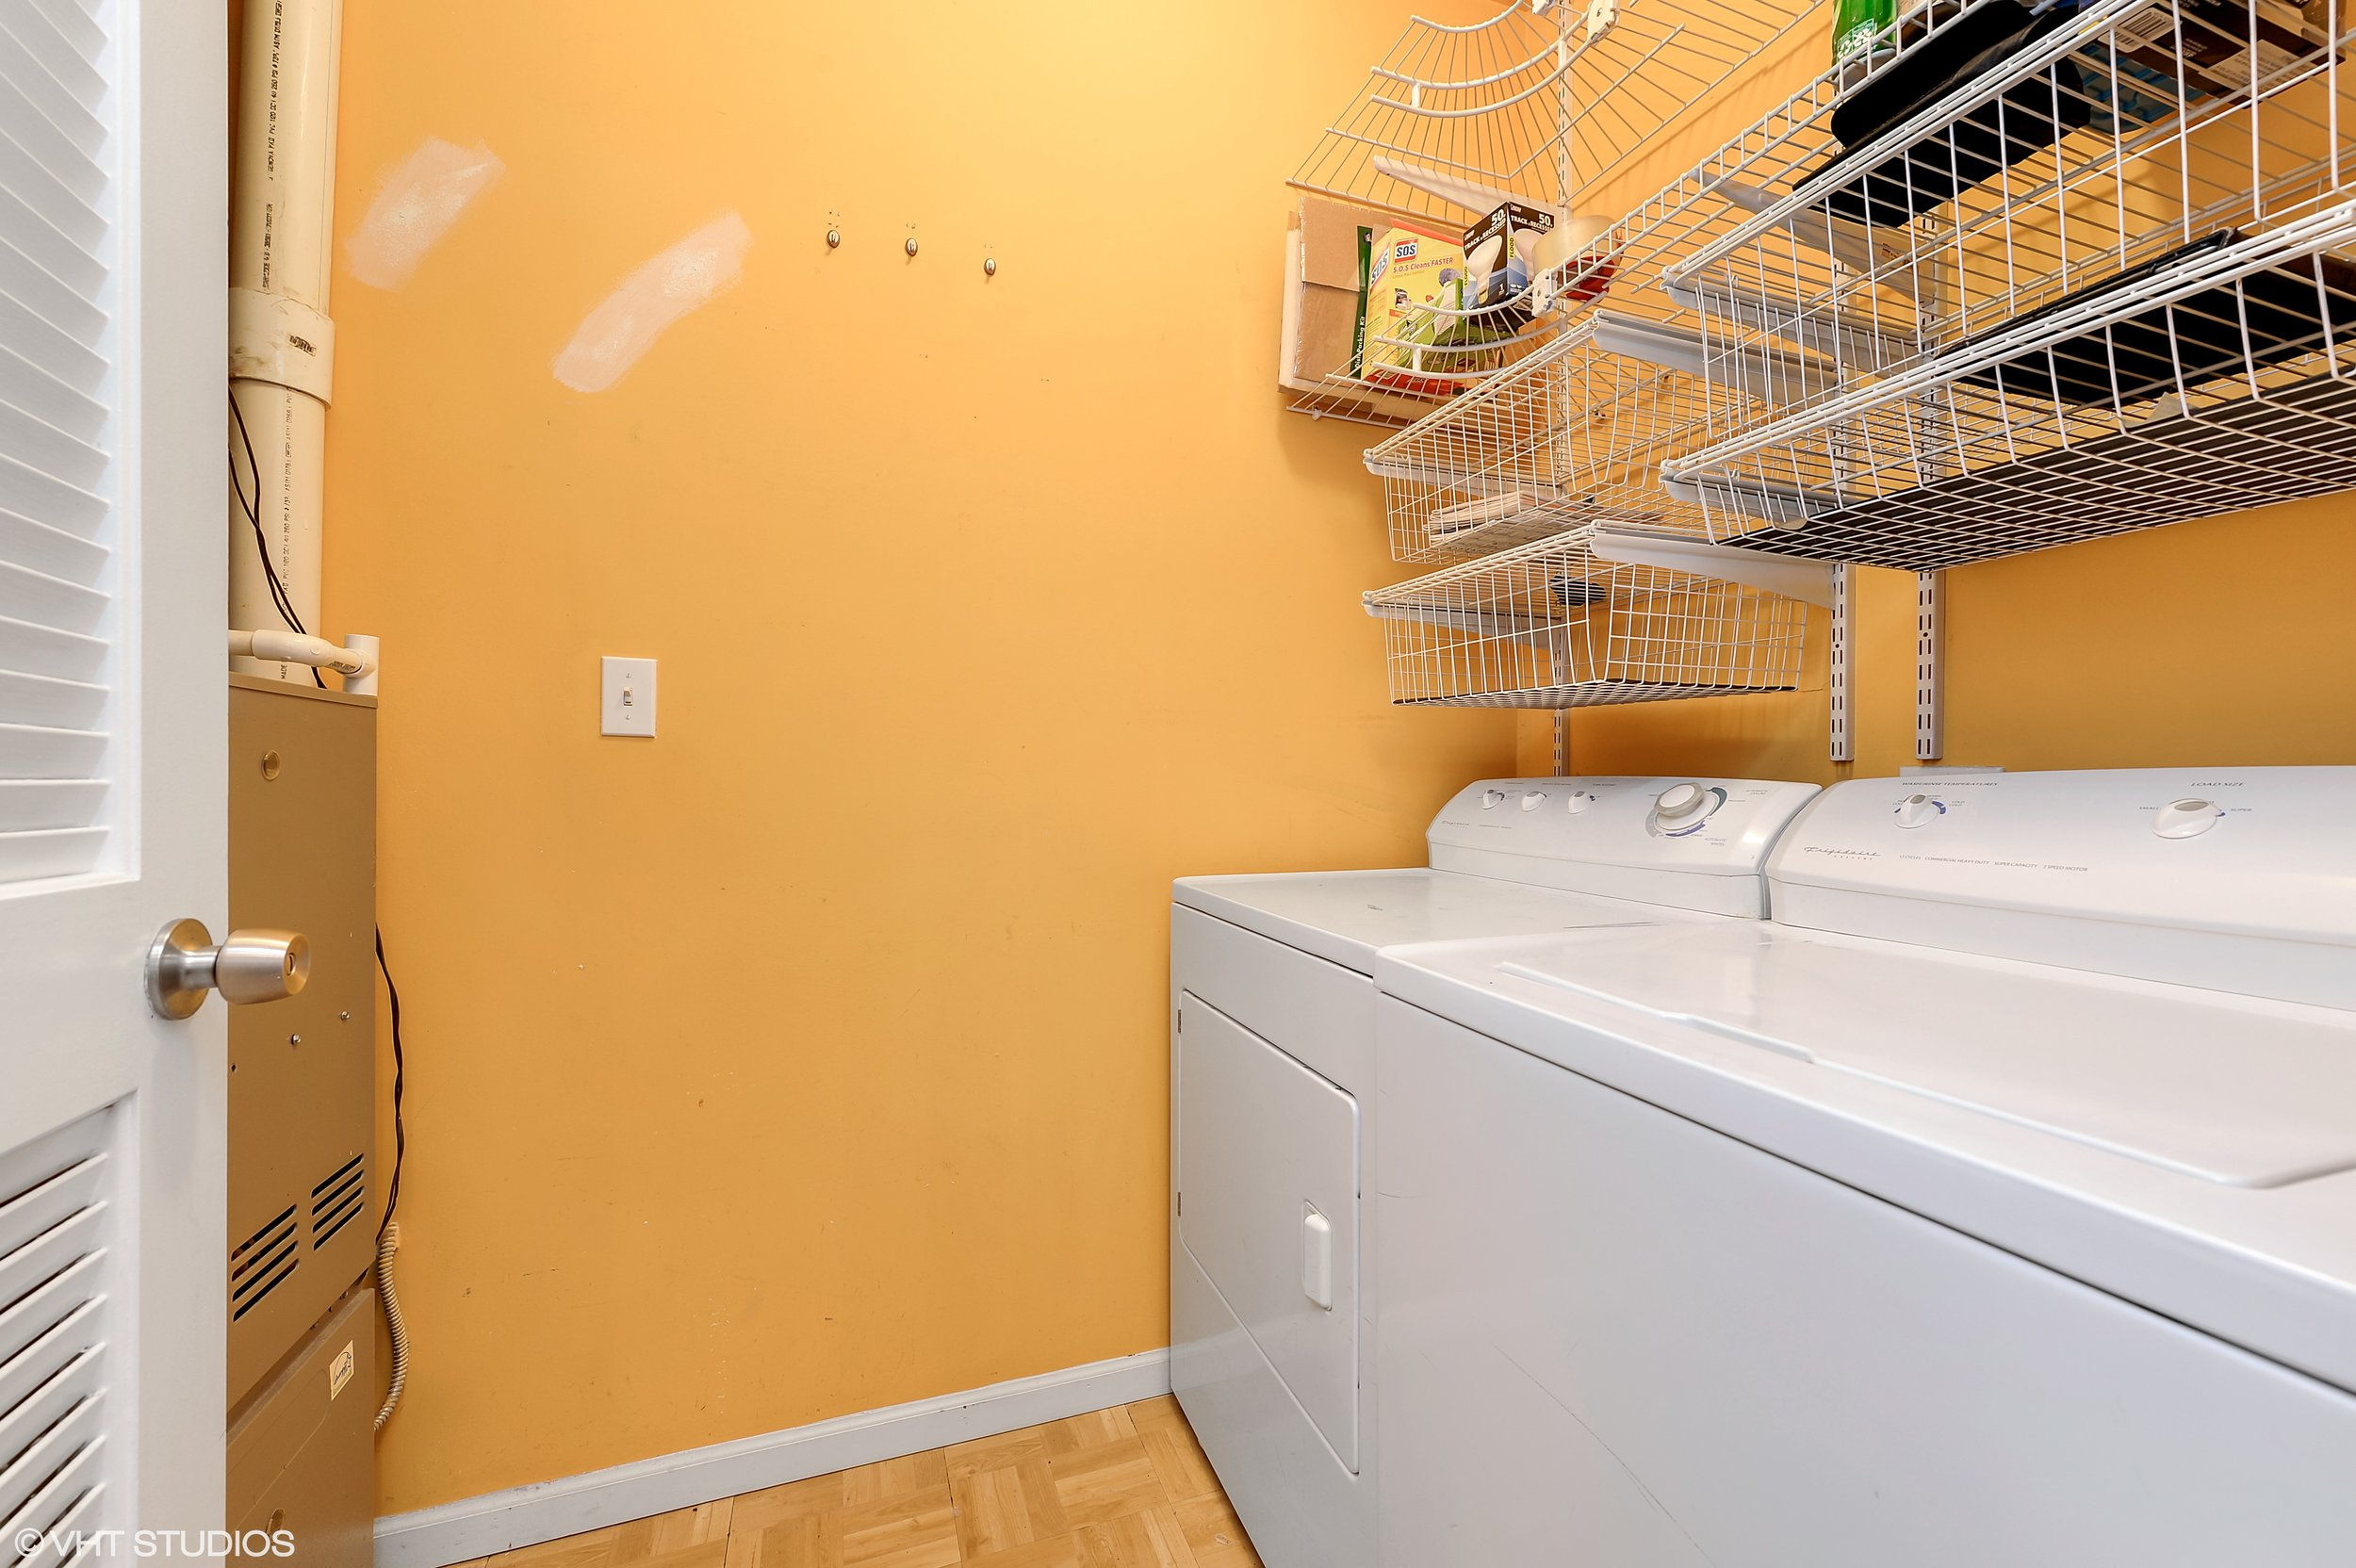 14_5318NorthRavenswoodAve_207_44_LaundryRoom_HiRes.jpg